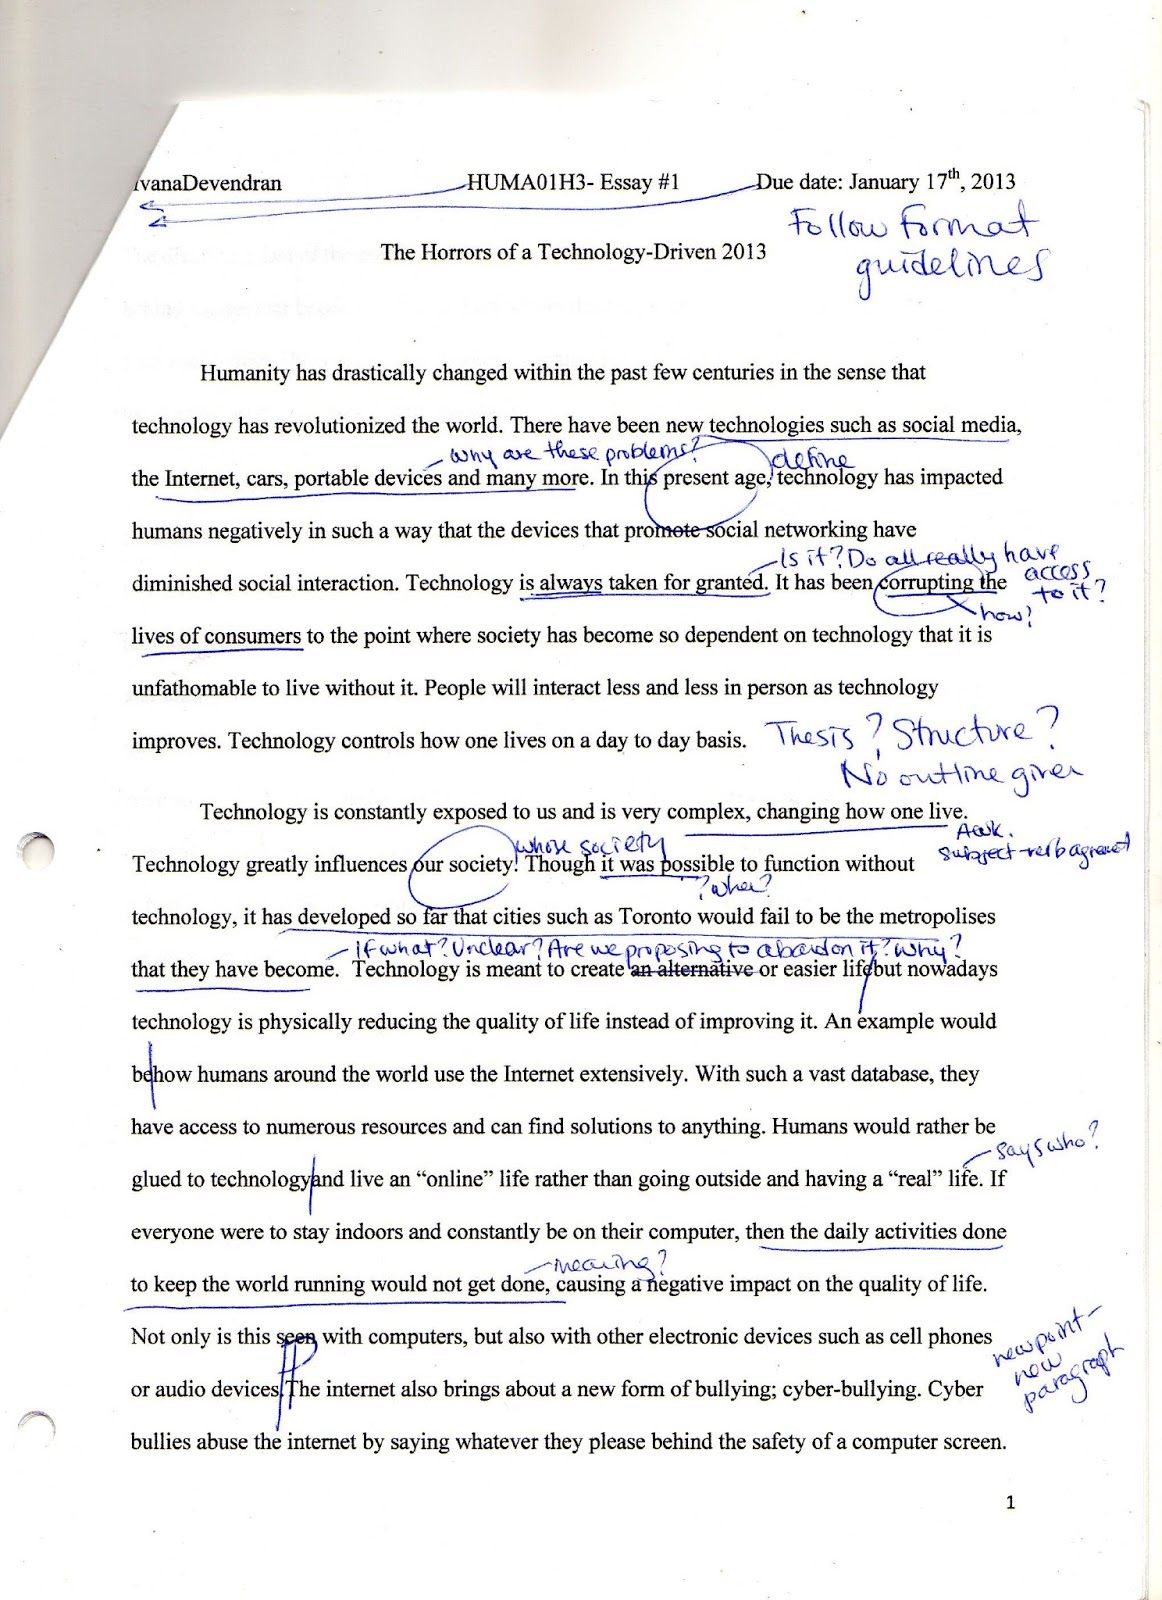 007 Essay Example Essays For Free Humanities Topics I Cause Effect Samples Examples Of Rare And Writing Prompts Full